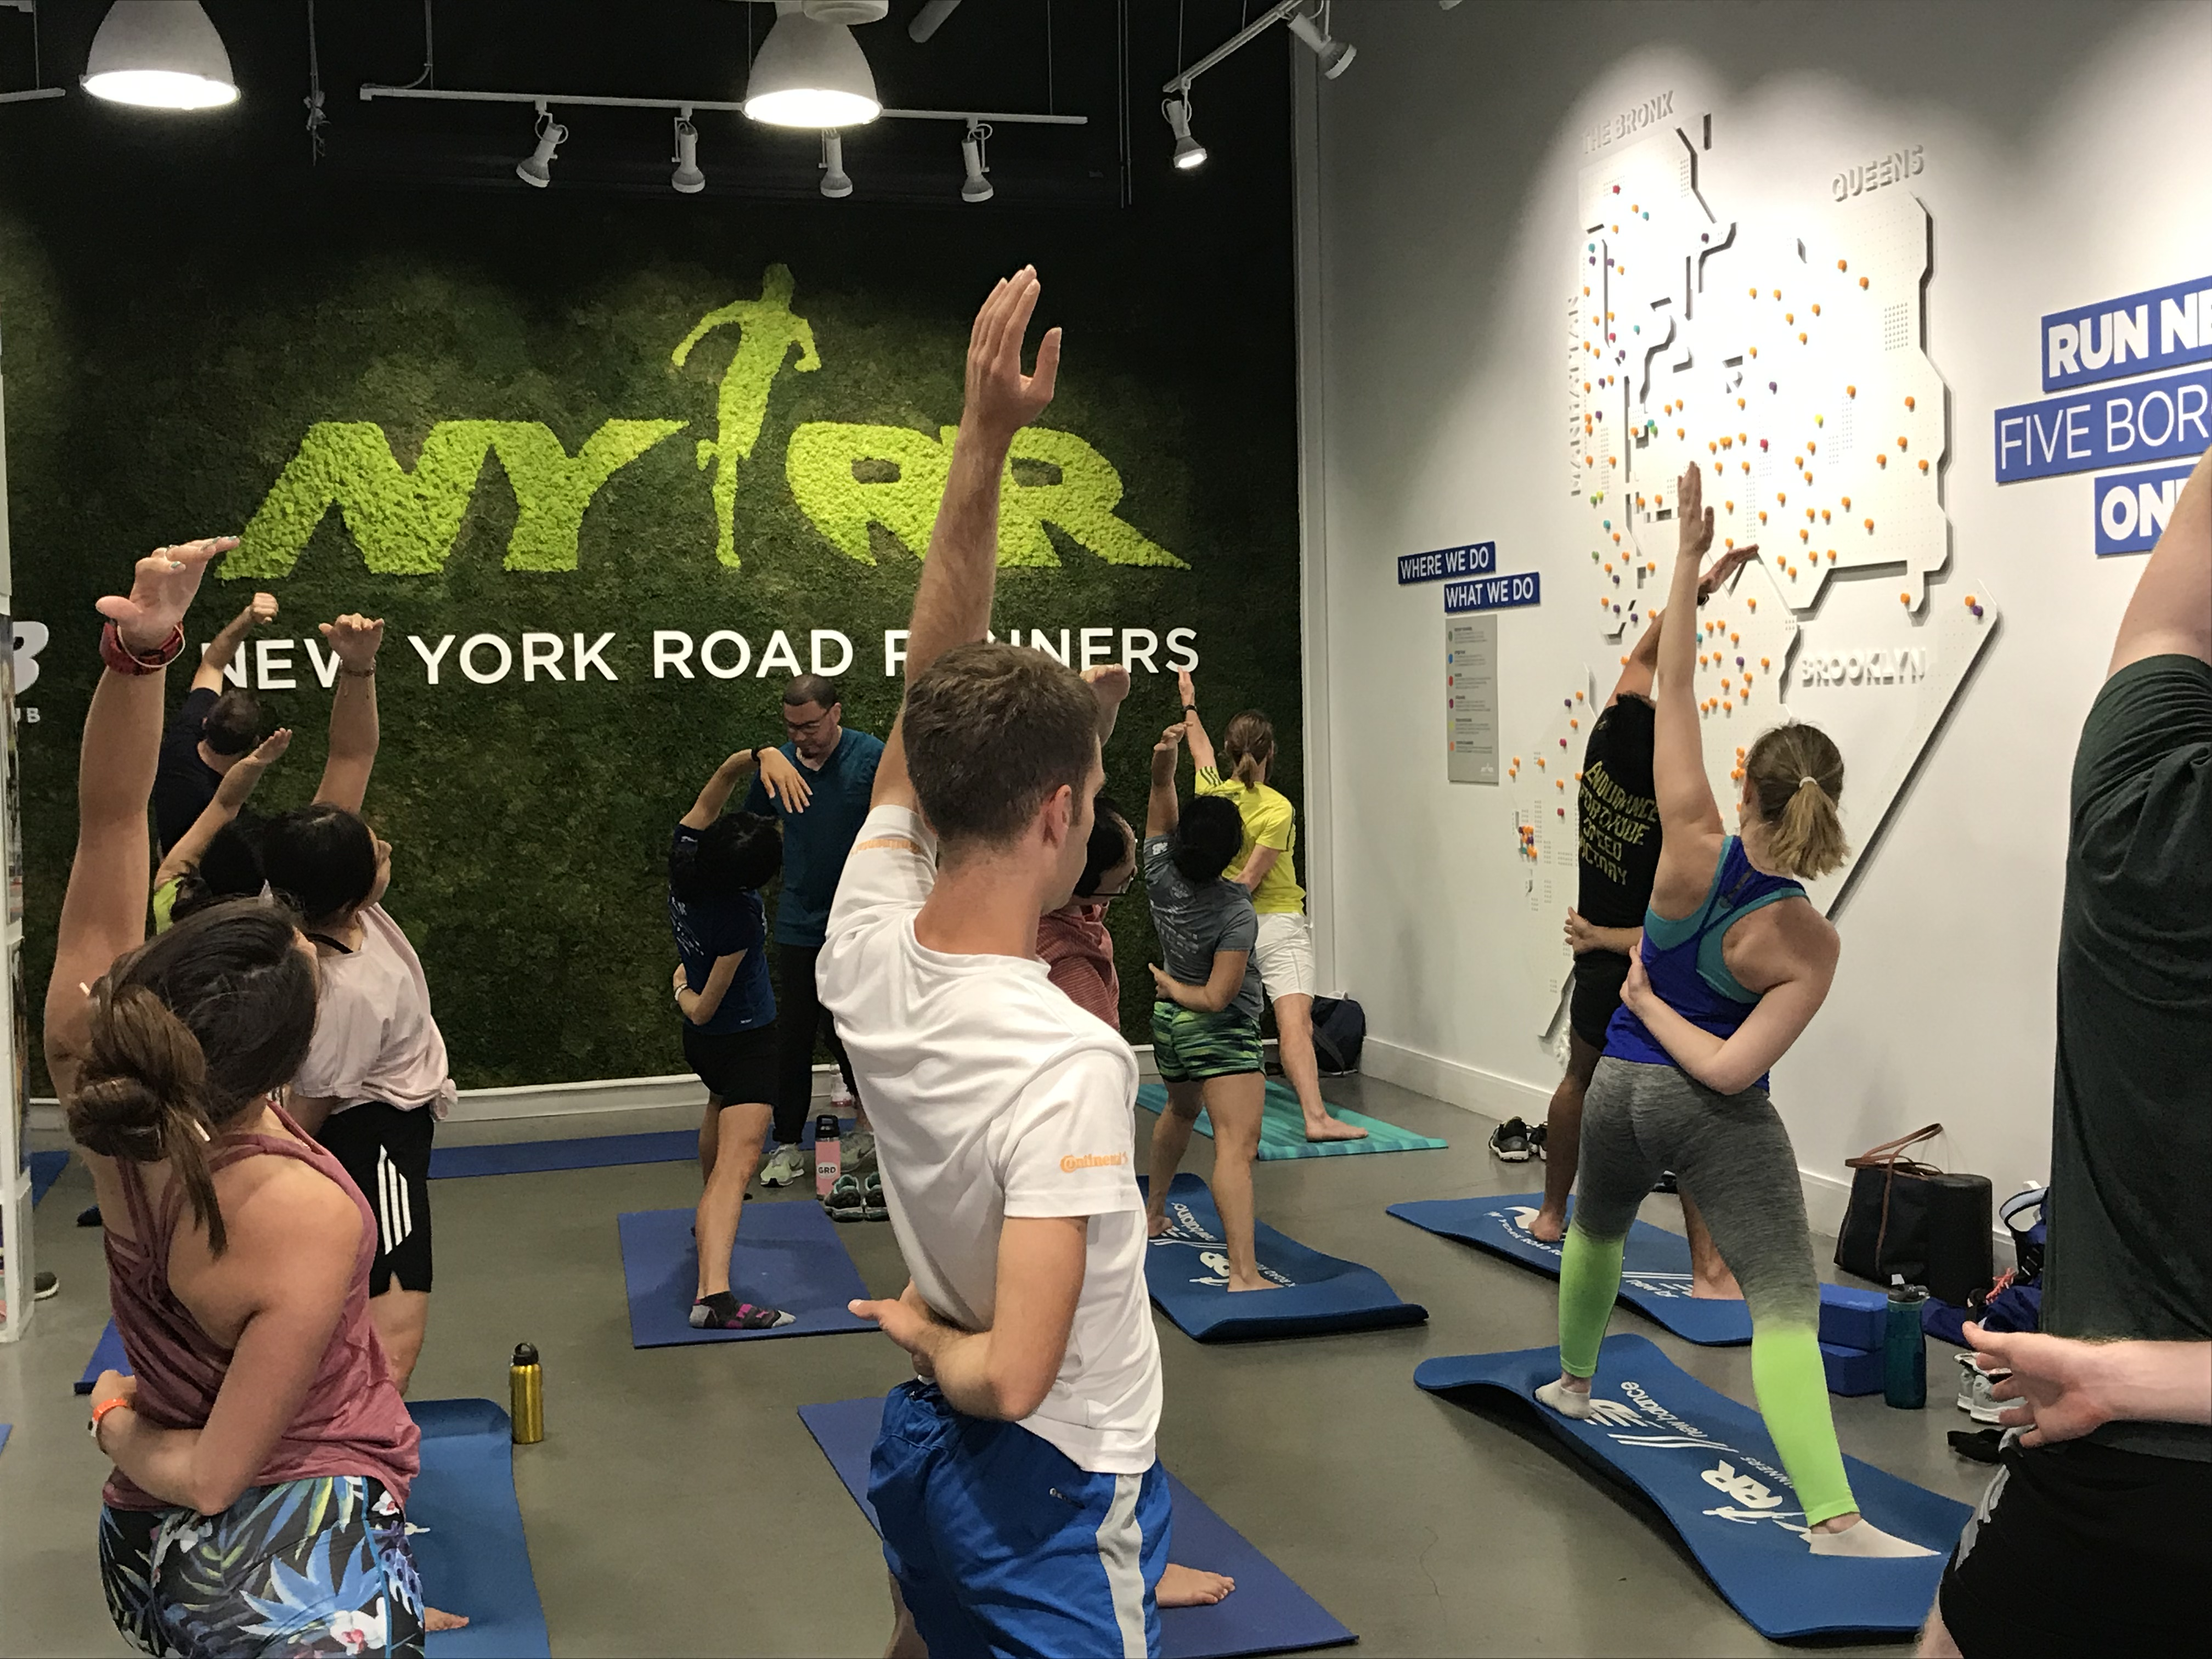 A yoga class at the NYRR Run center